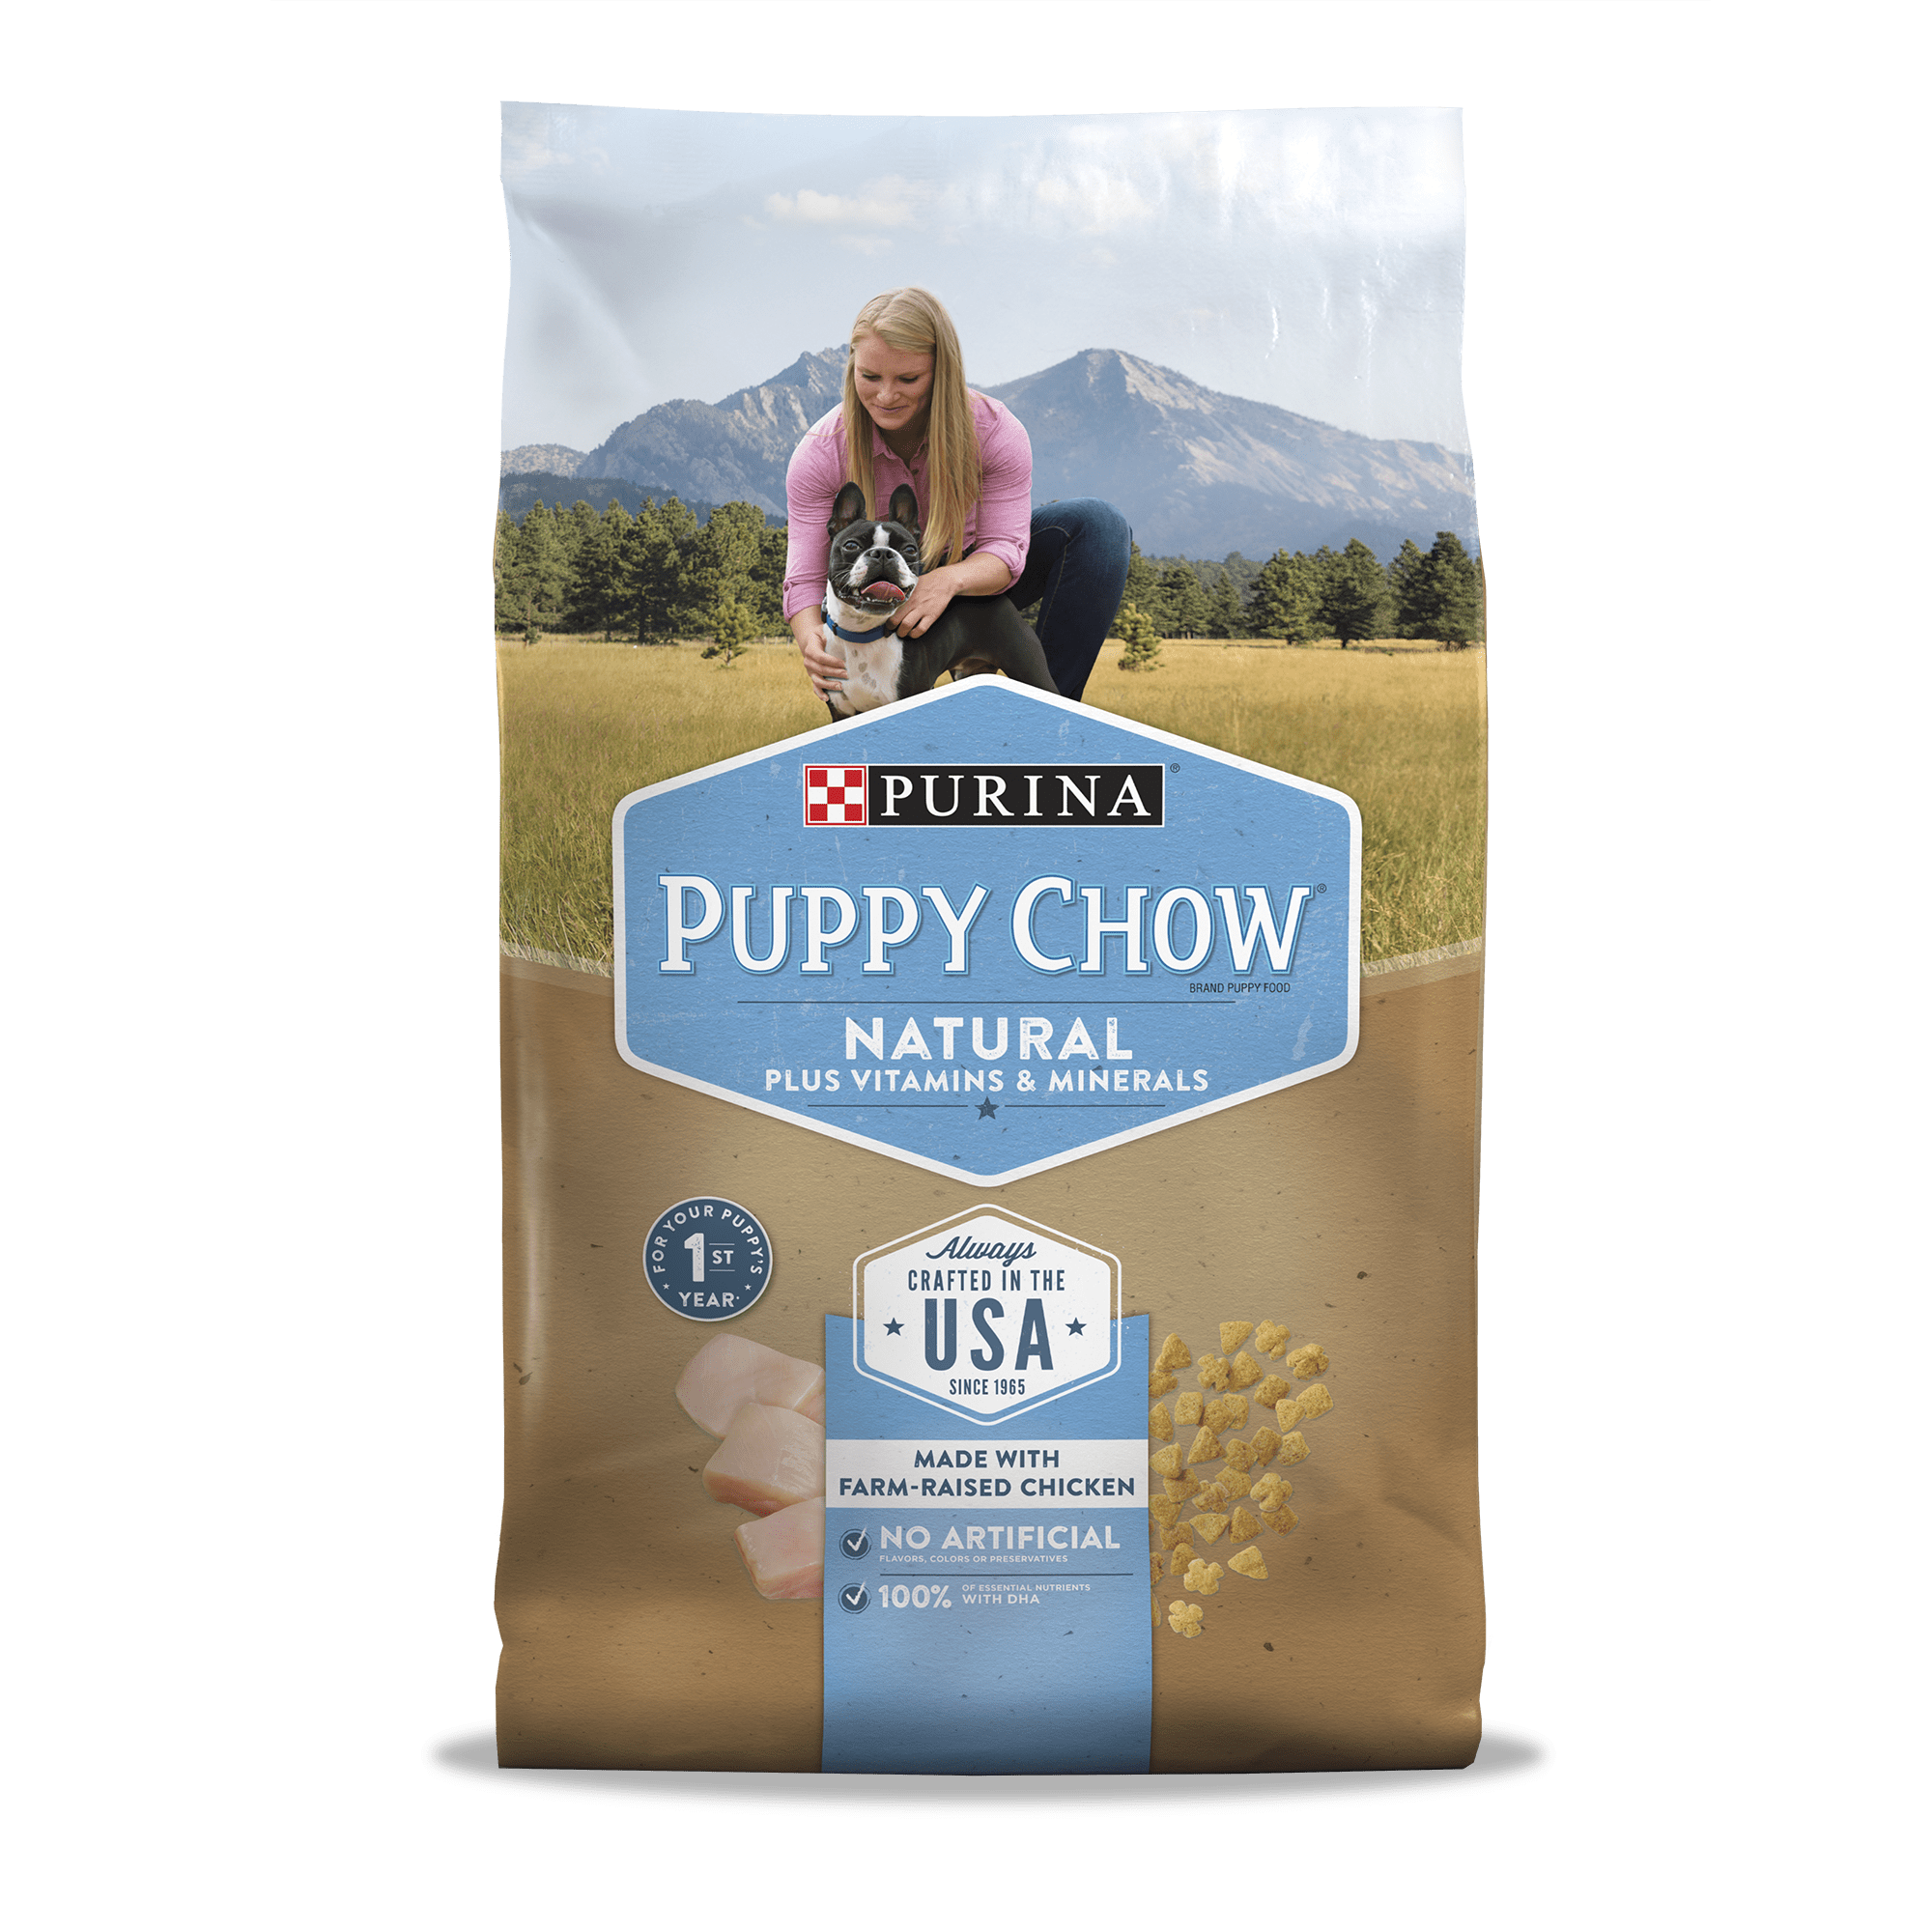 Purina Puppy Chow Natural With Farm-Raised Chicken Dry Puppy Food 30 lb. Bag by Nestle Purina Petcare Company